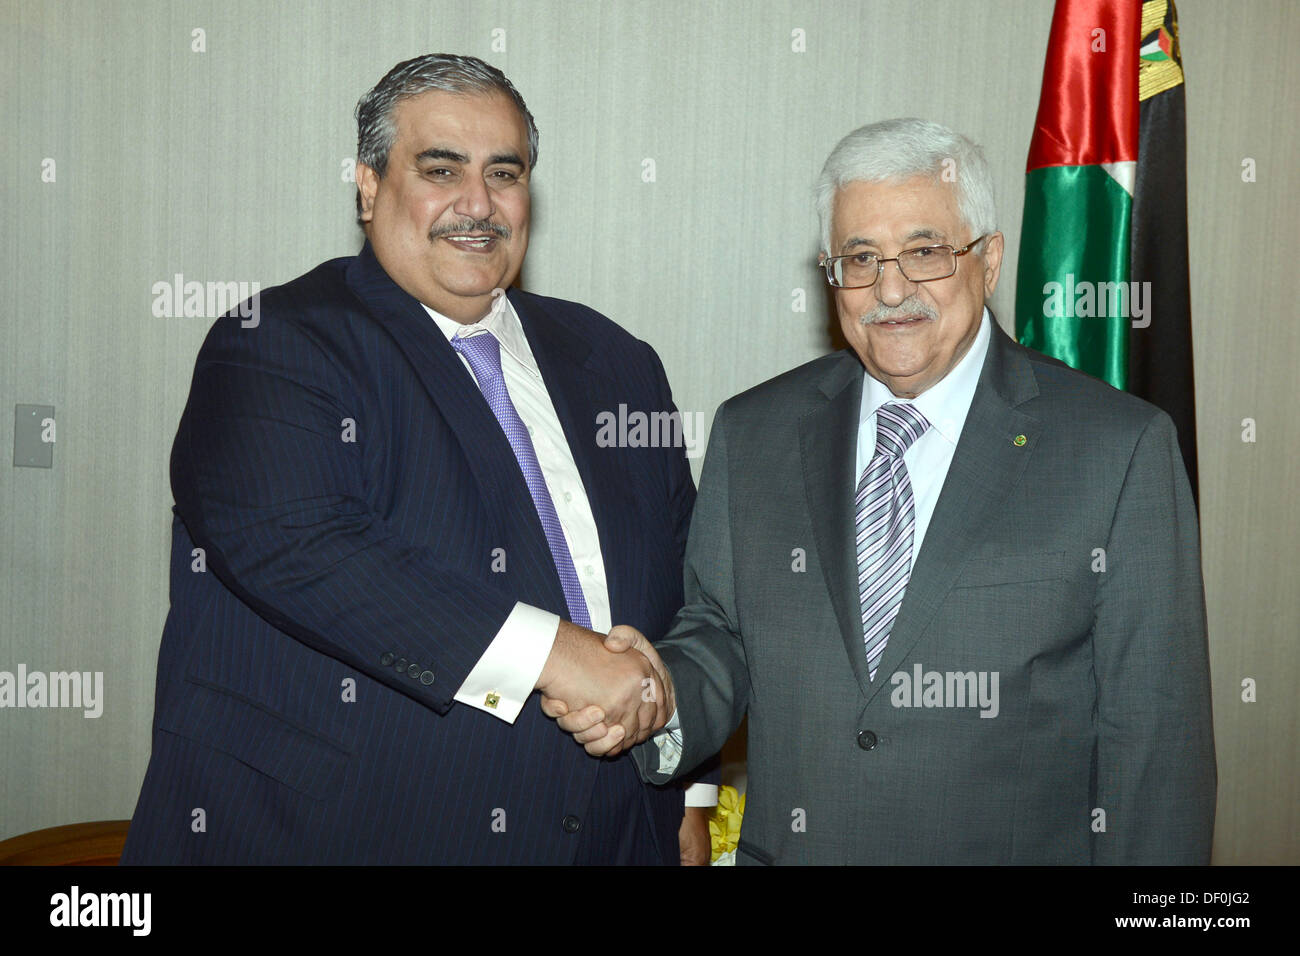 New York, New York, USA. 25th Sep, 2013. Palestinian President Mahmoud Abbas meets with Foreign Minister of Bahrain Stock Photo